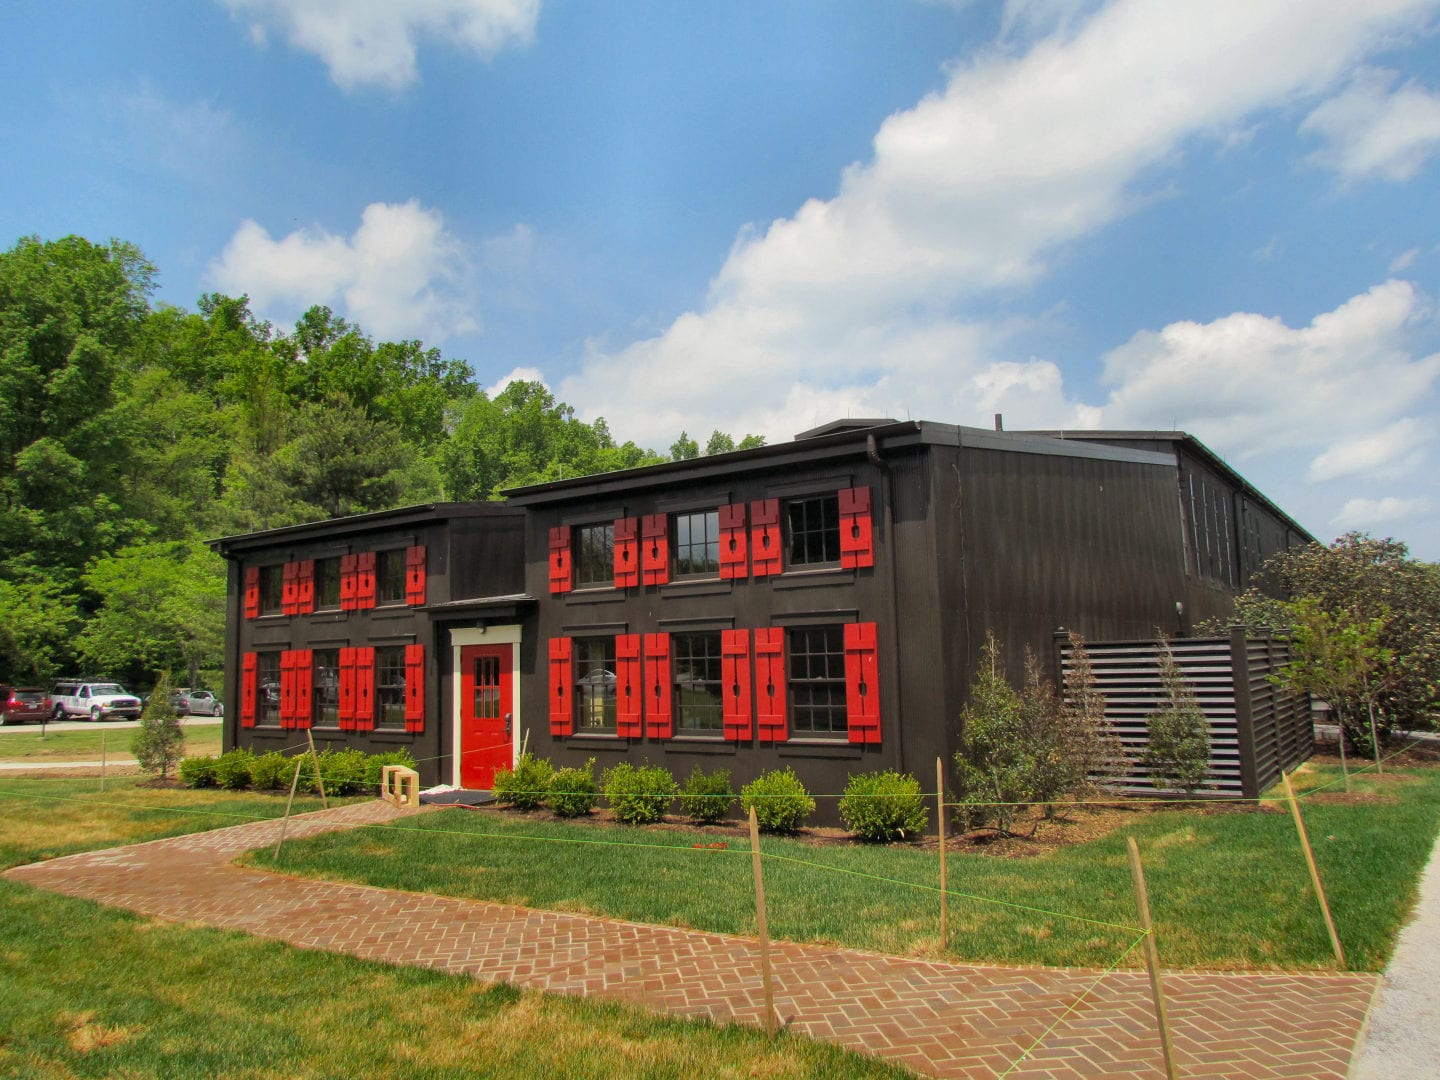 A black house with red designs